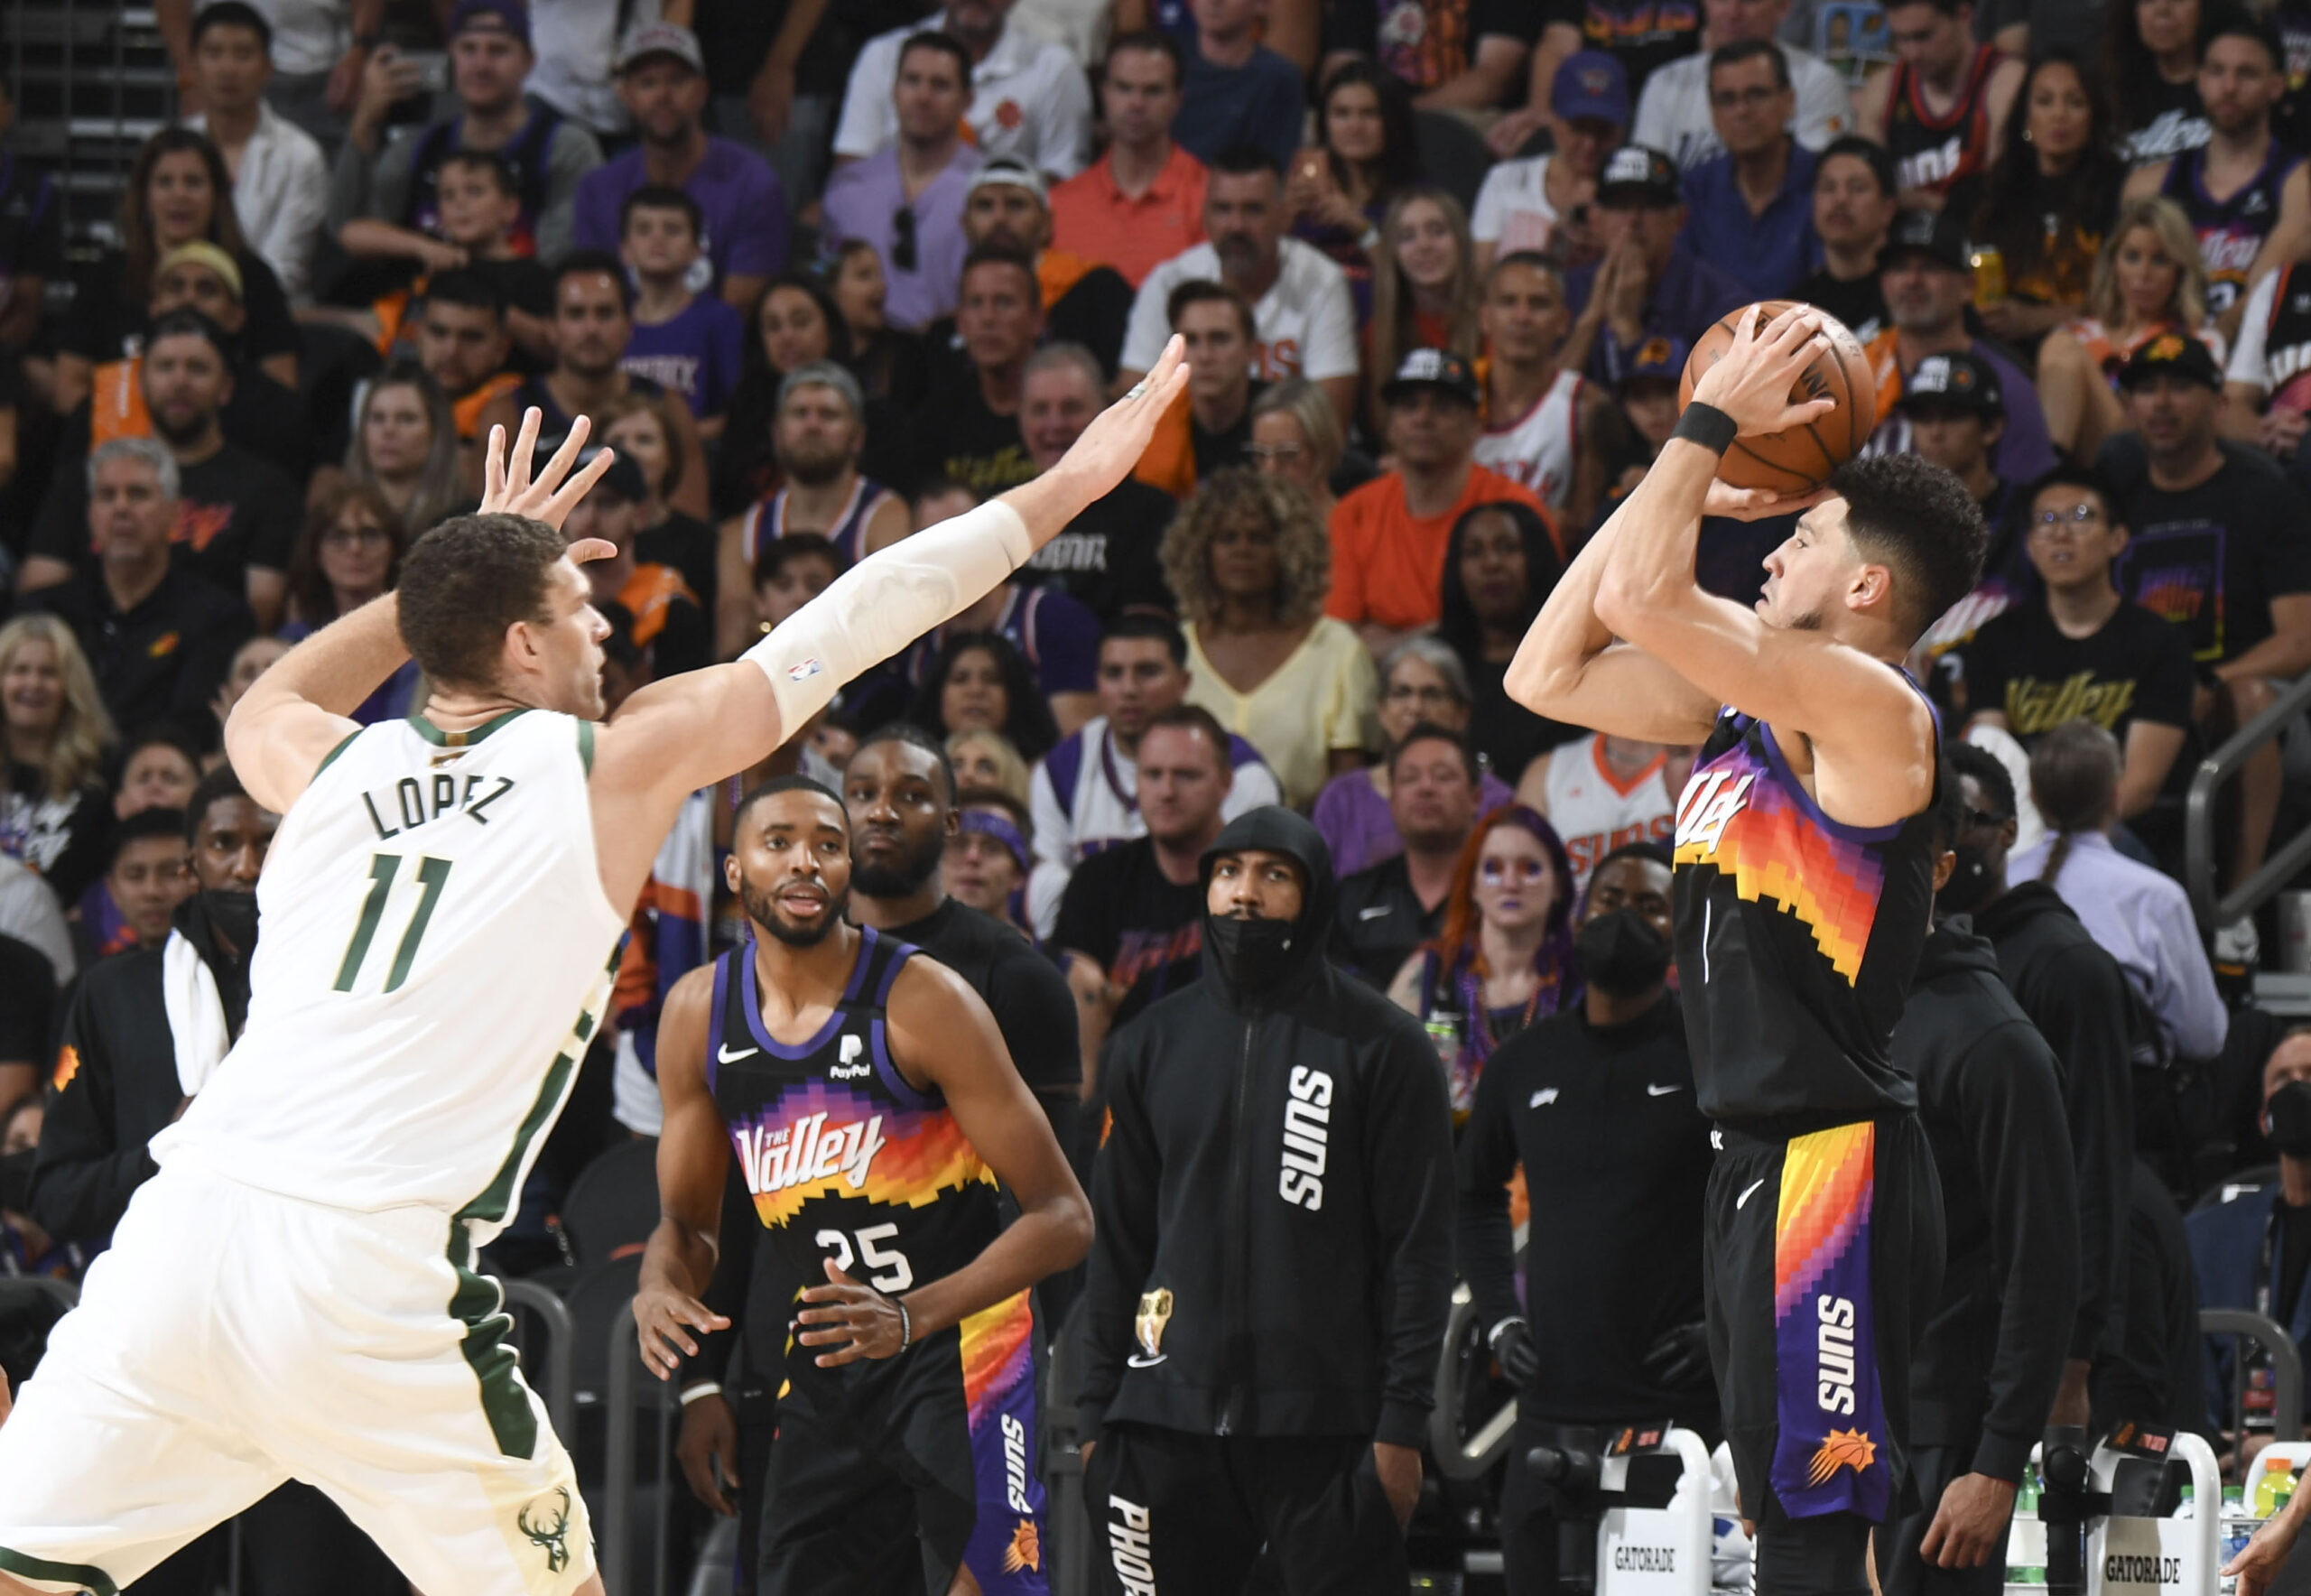 Devin Booker with 7 3-pointers vs. Milwaukee Bucks